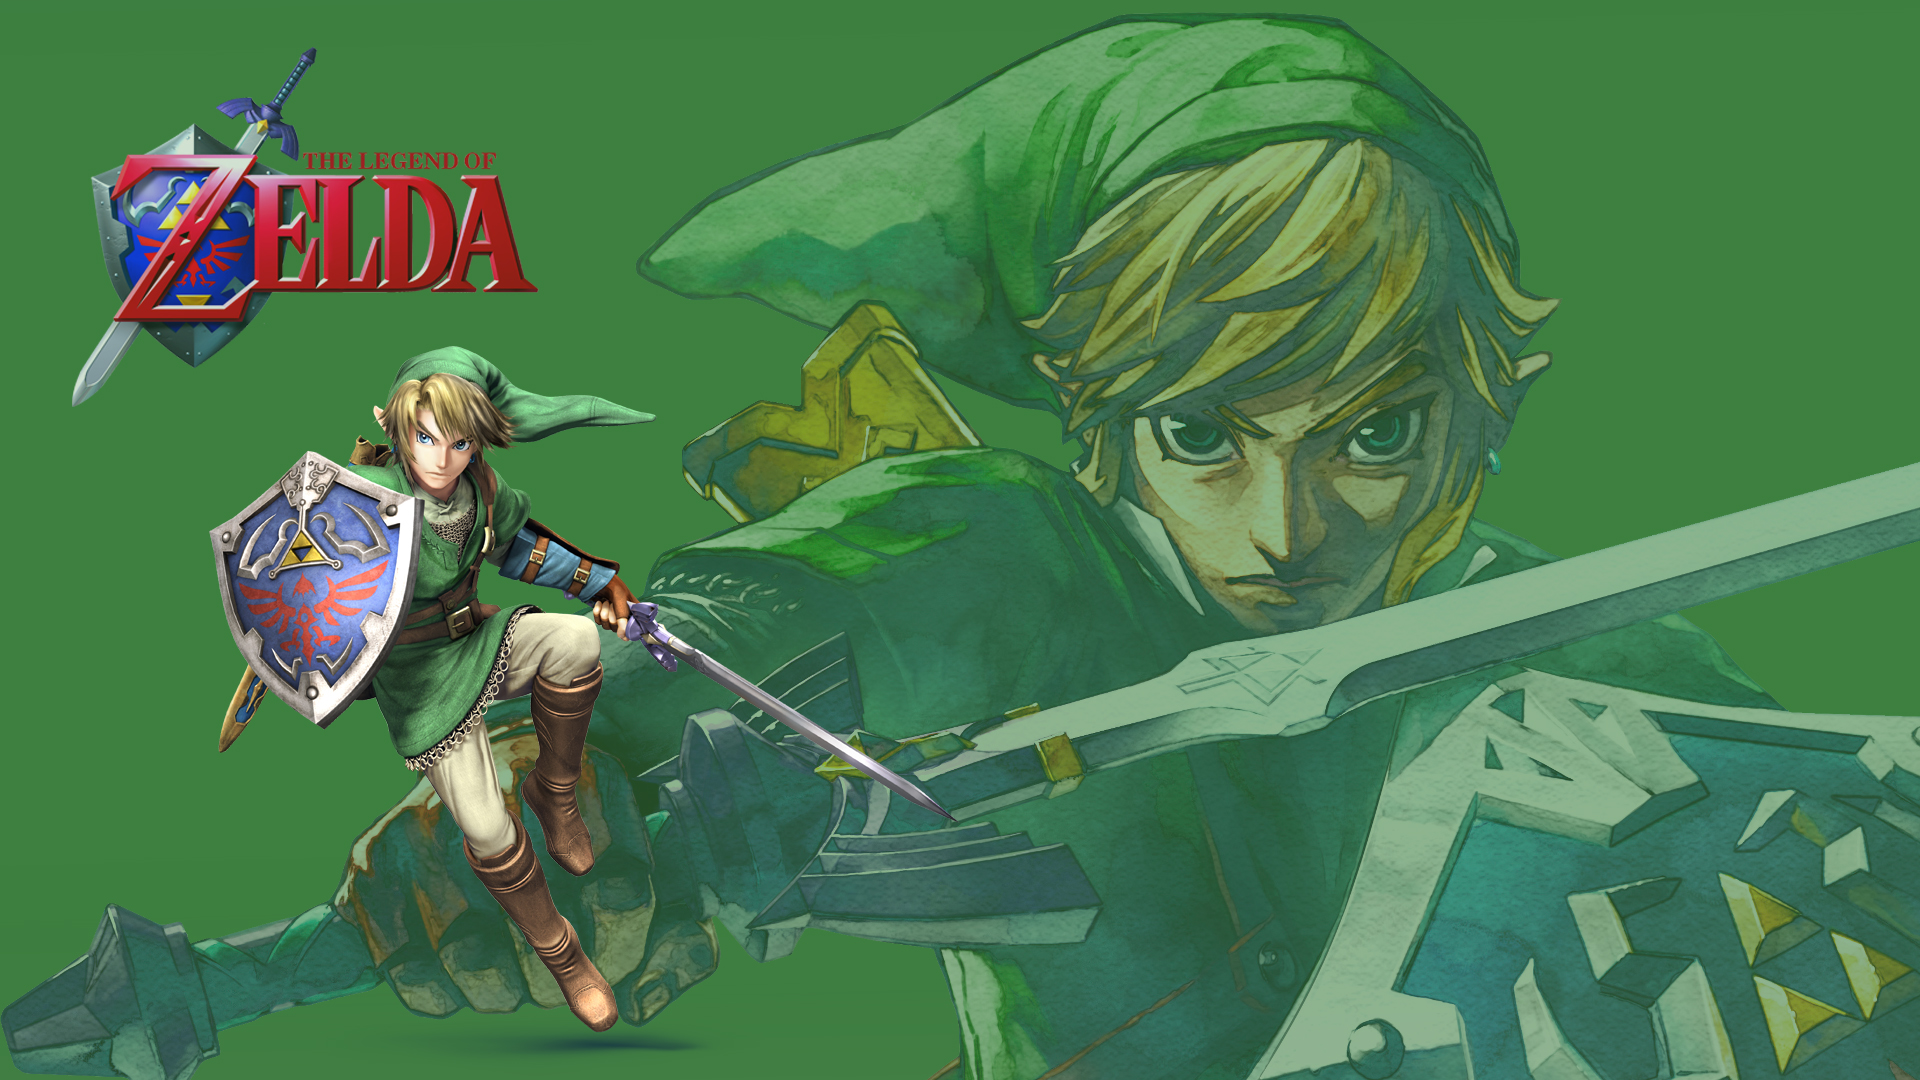 background-wallpaper-hd-games-zelda | wallpaper.wiki